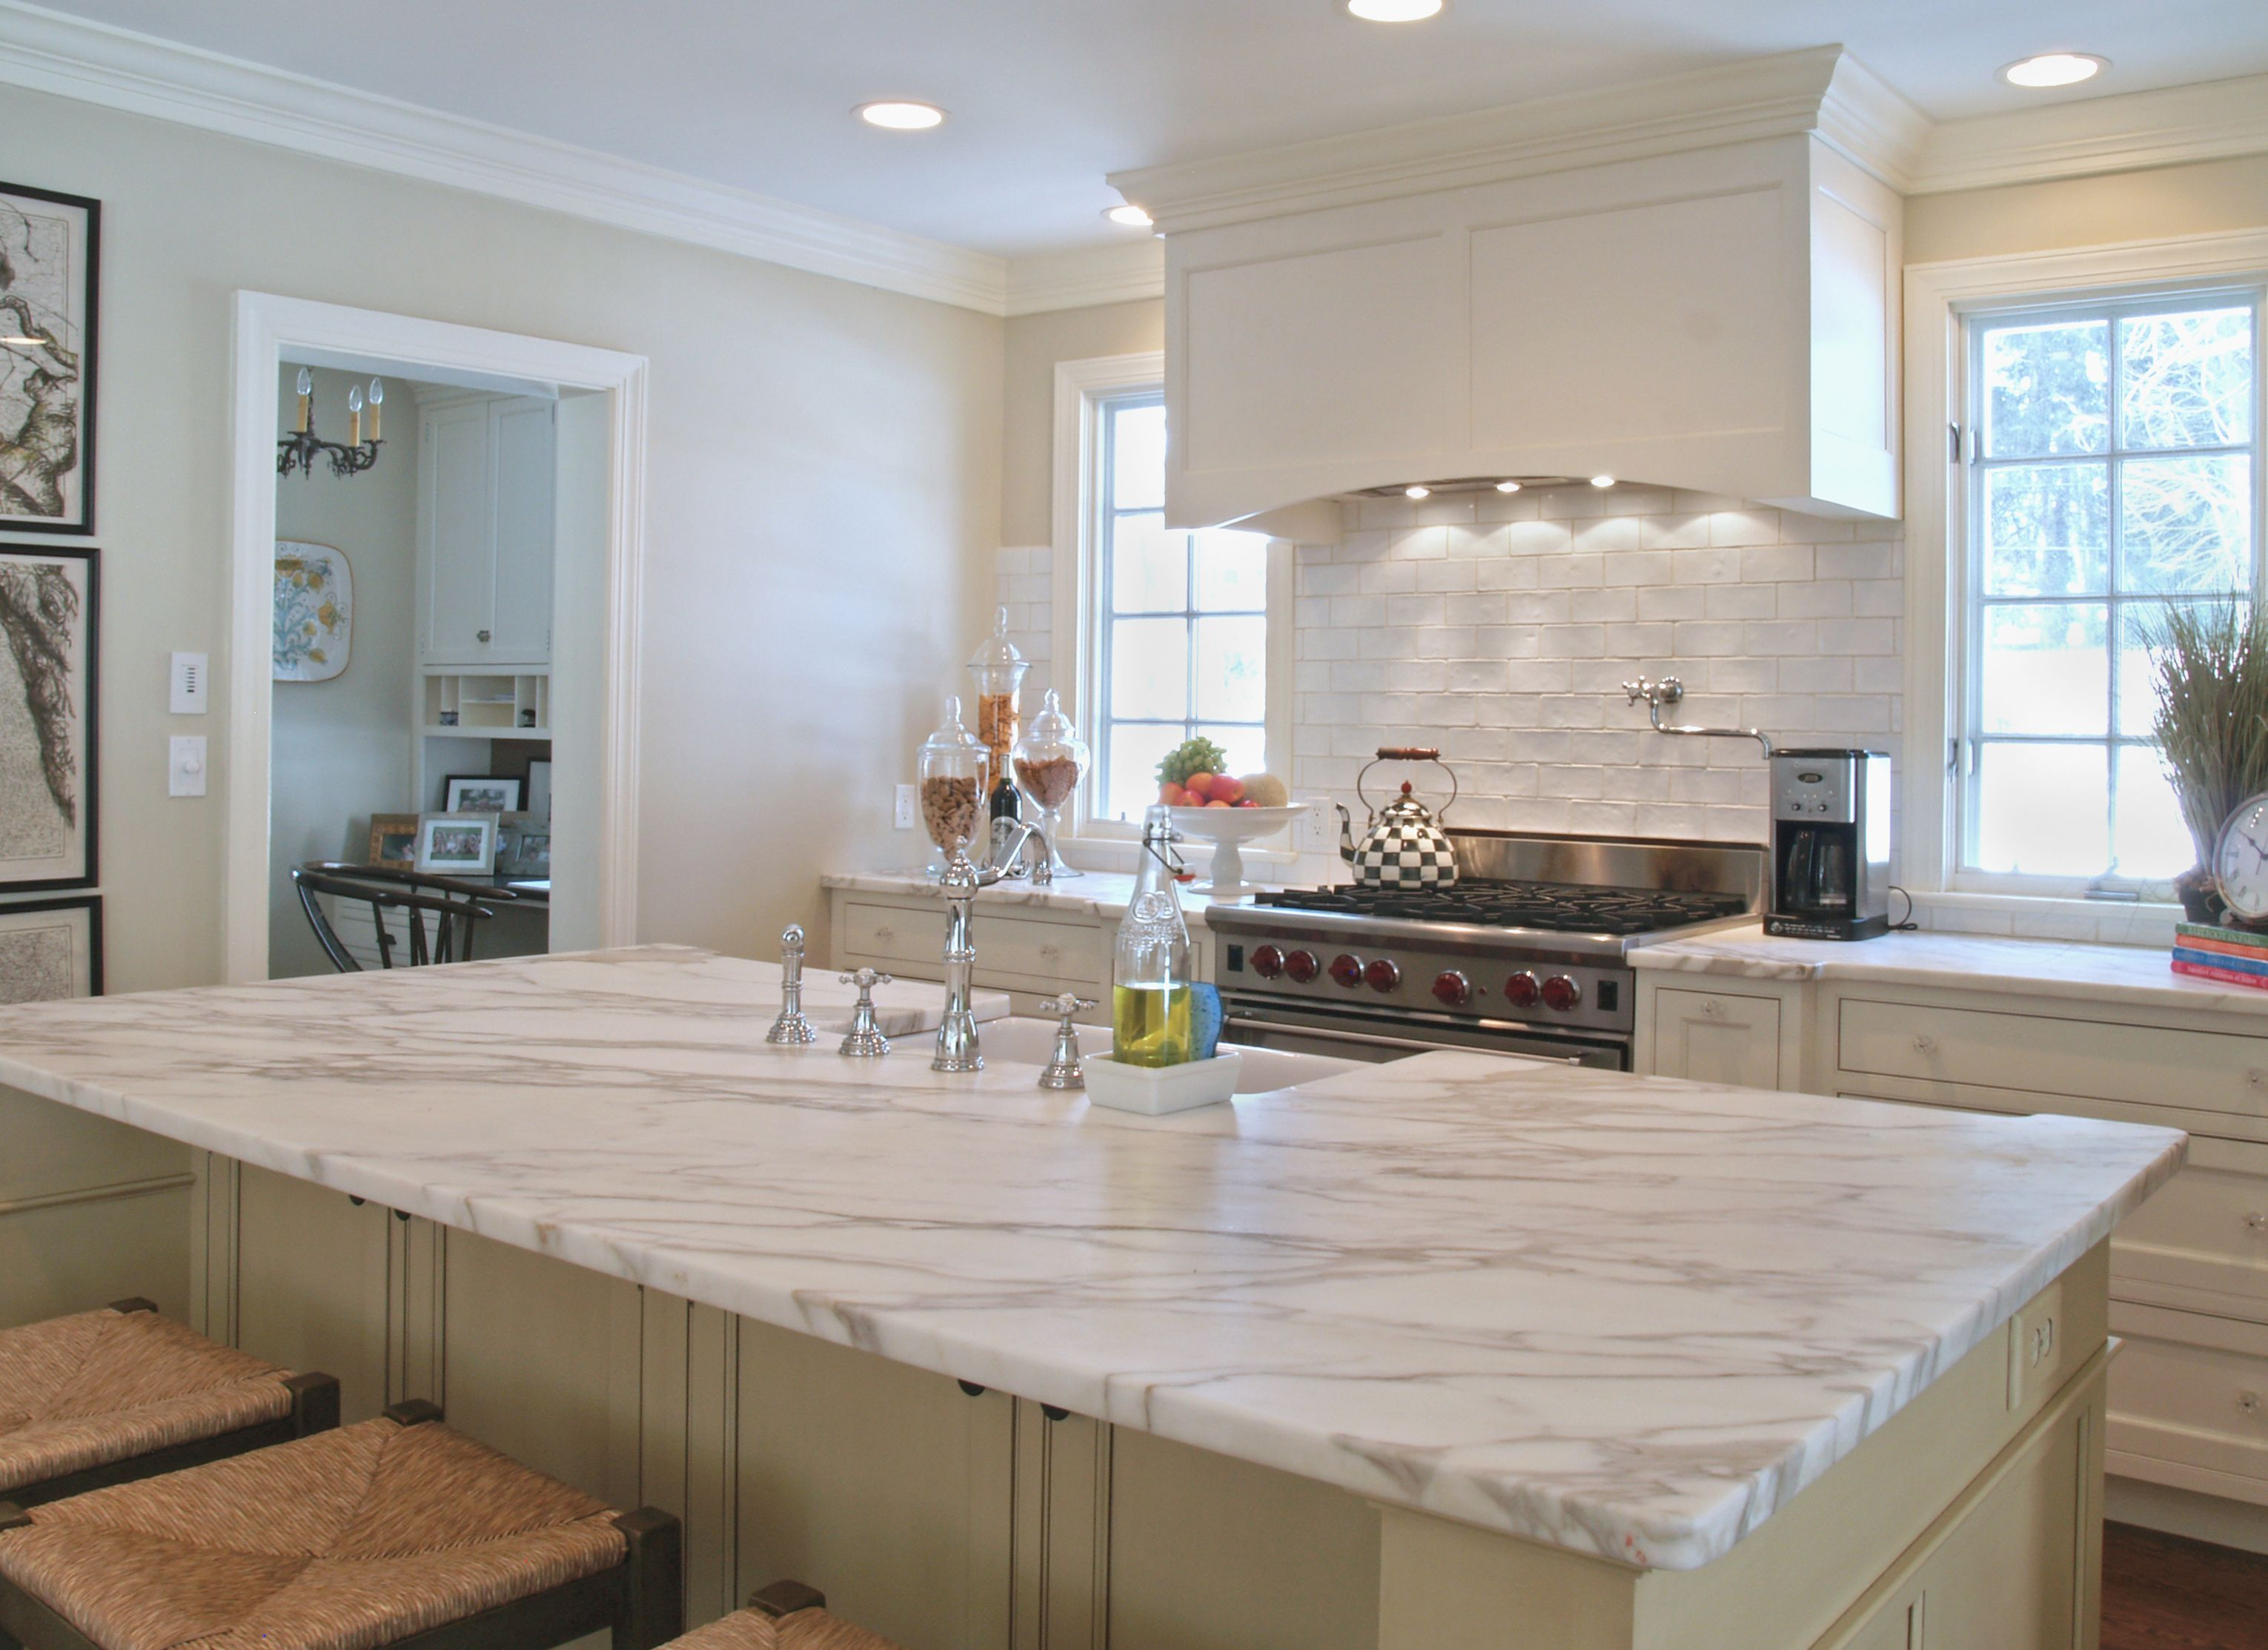 prefab laminate countertops kitchen laminate countertops 17 Best Images About Kitchen Remodel Laminate Countertops On